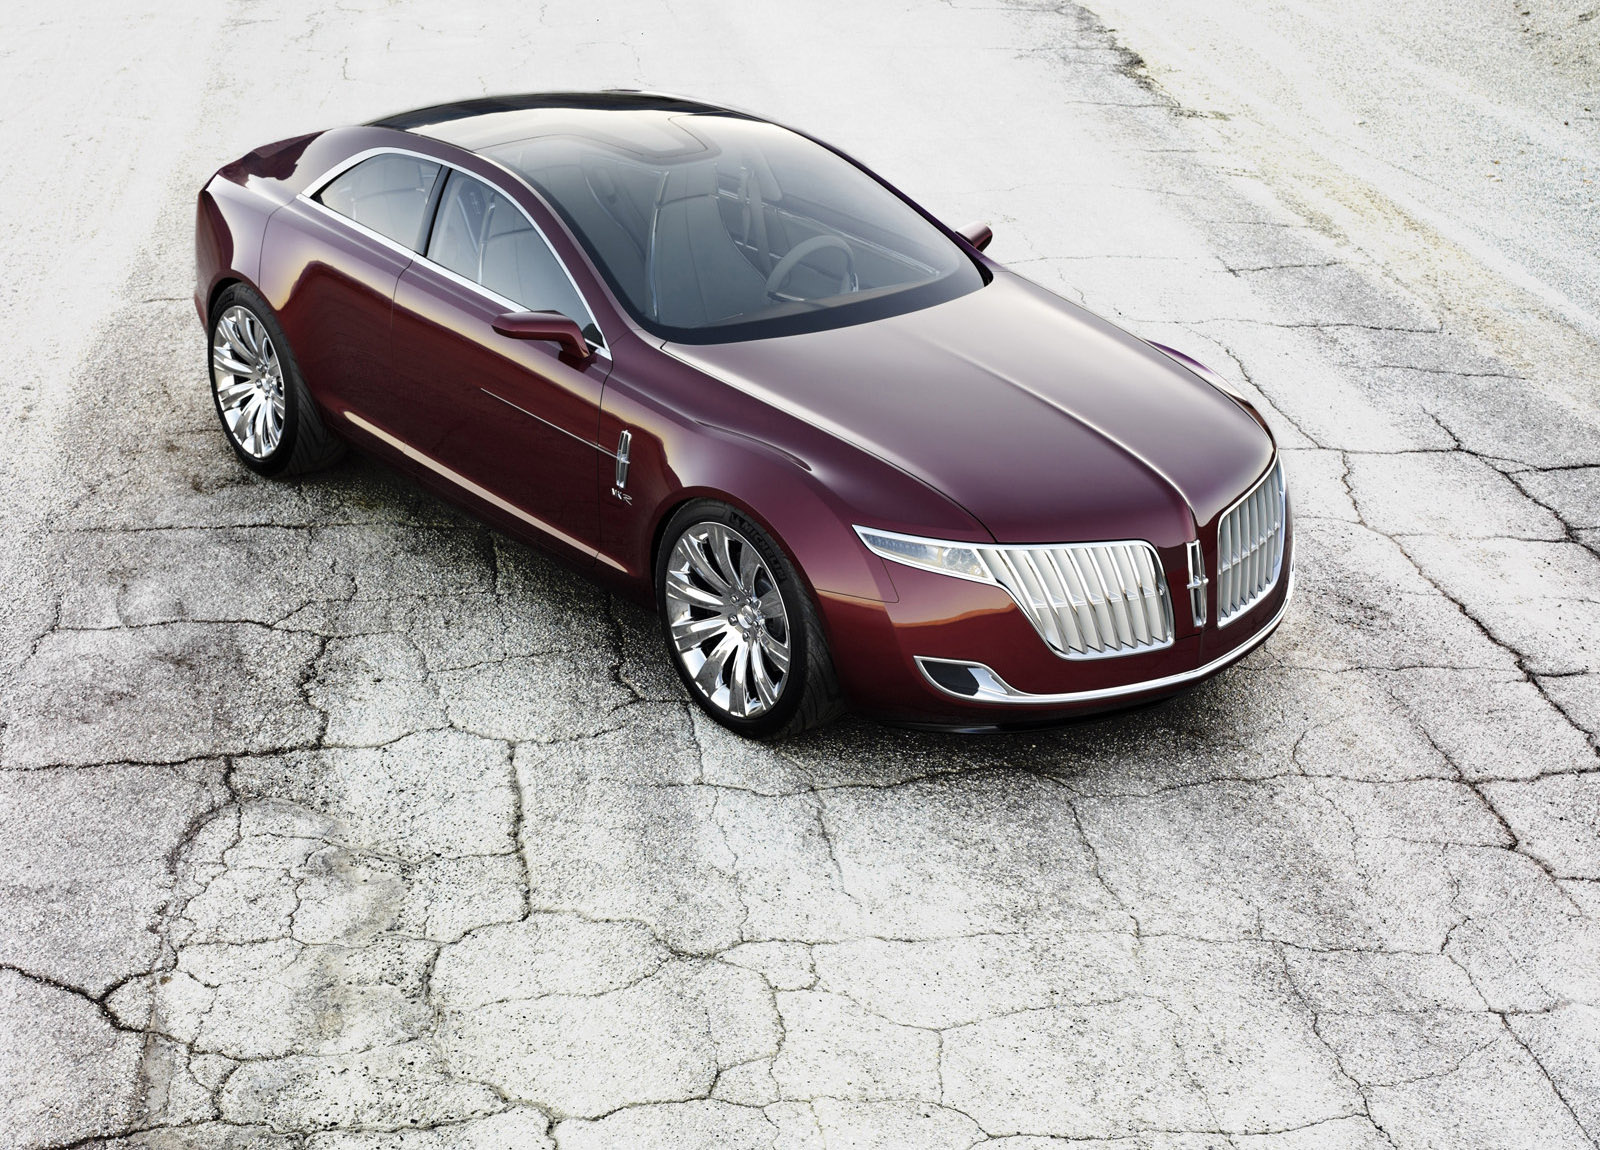 https://www.carsinvasion.com/gallery/2007-lincoln-mkr-concept/2007-lincoln-mkr-concept-01.jpg